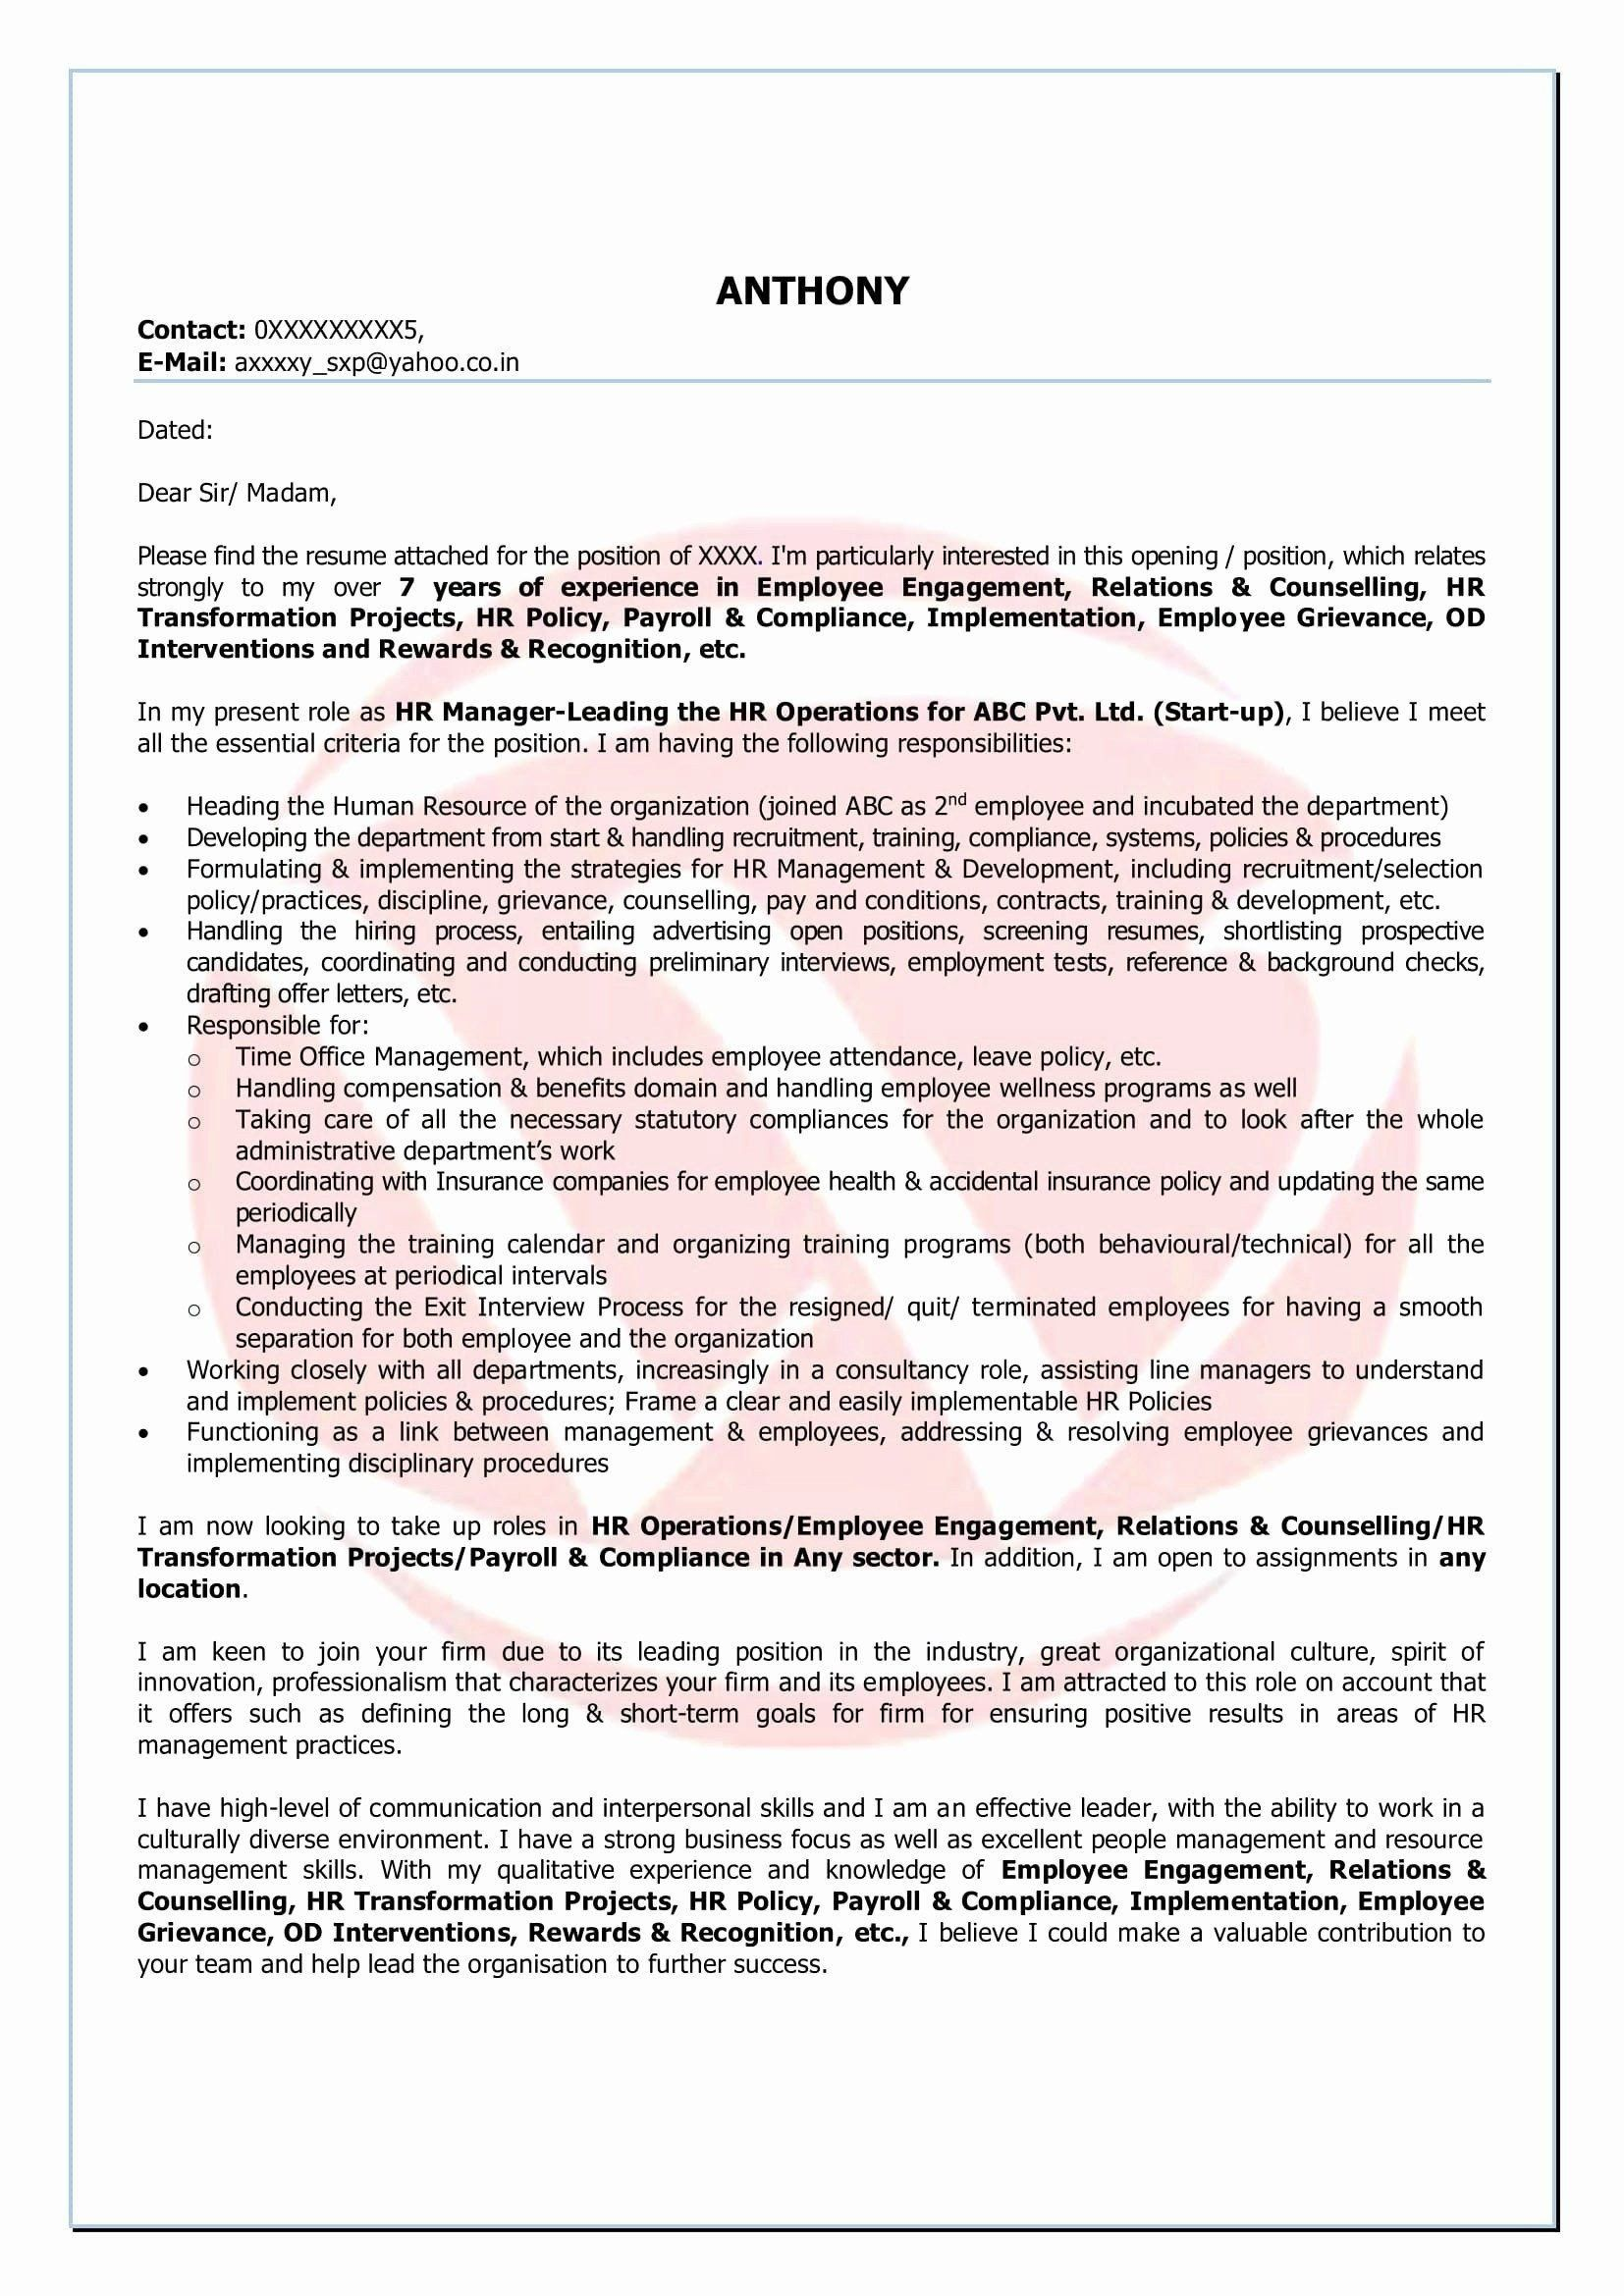 Download Resume From Indeed New Exemple De Cv Indeed Agreable 30 Best How To Upload A Resume Resume Examples Resume Skills Resume Template Examples